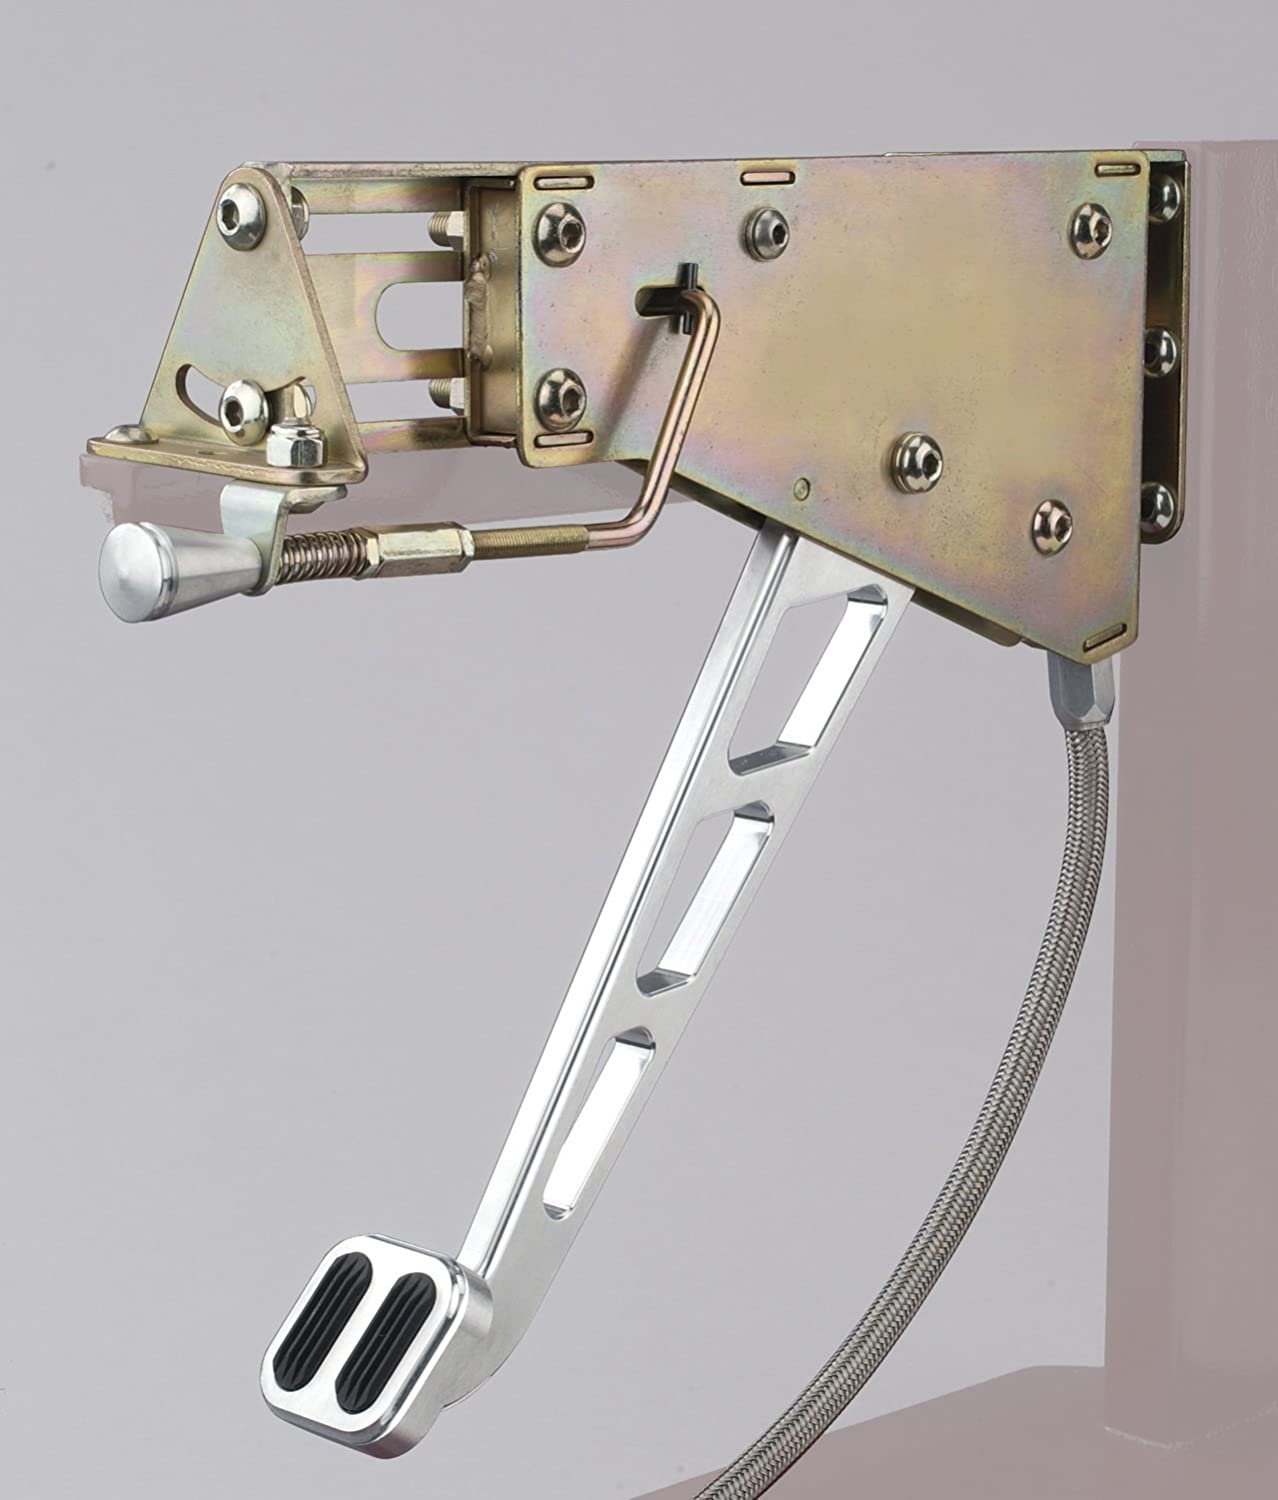 Lokar EFB-9002 Billet Aluminum Under-The-Dash Foot Operated Emergency Brake with Windowed Arm and Rubber